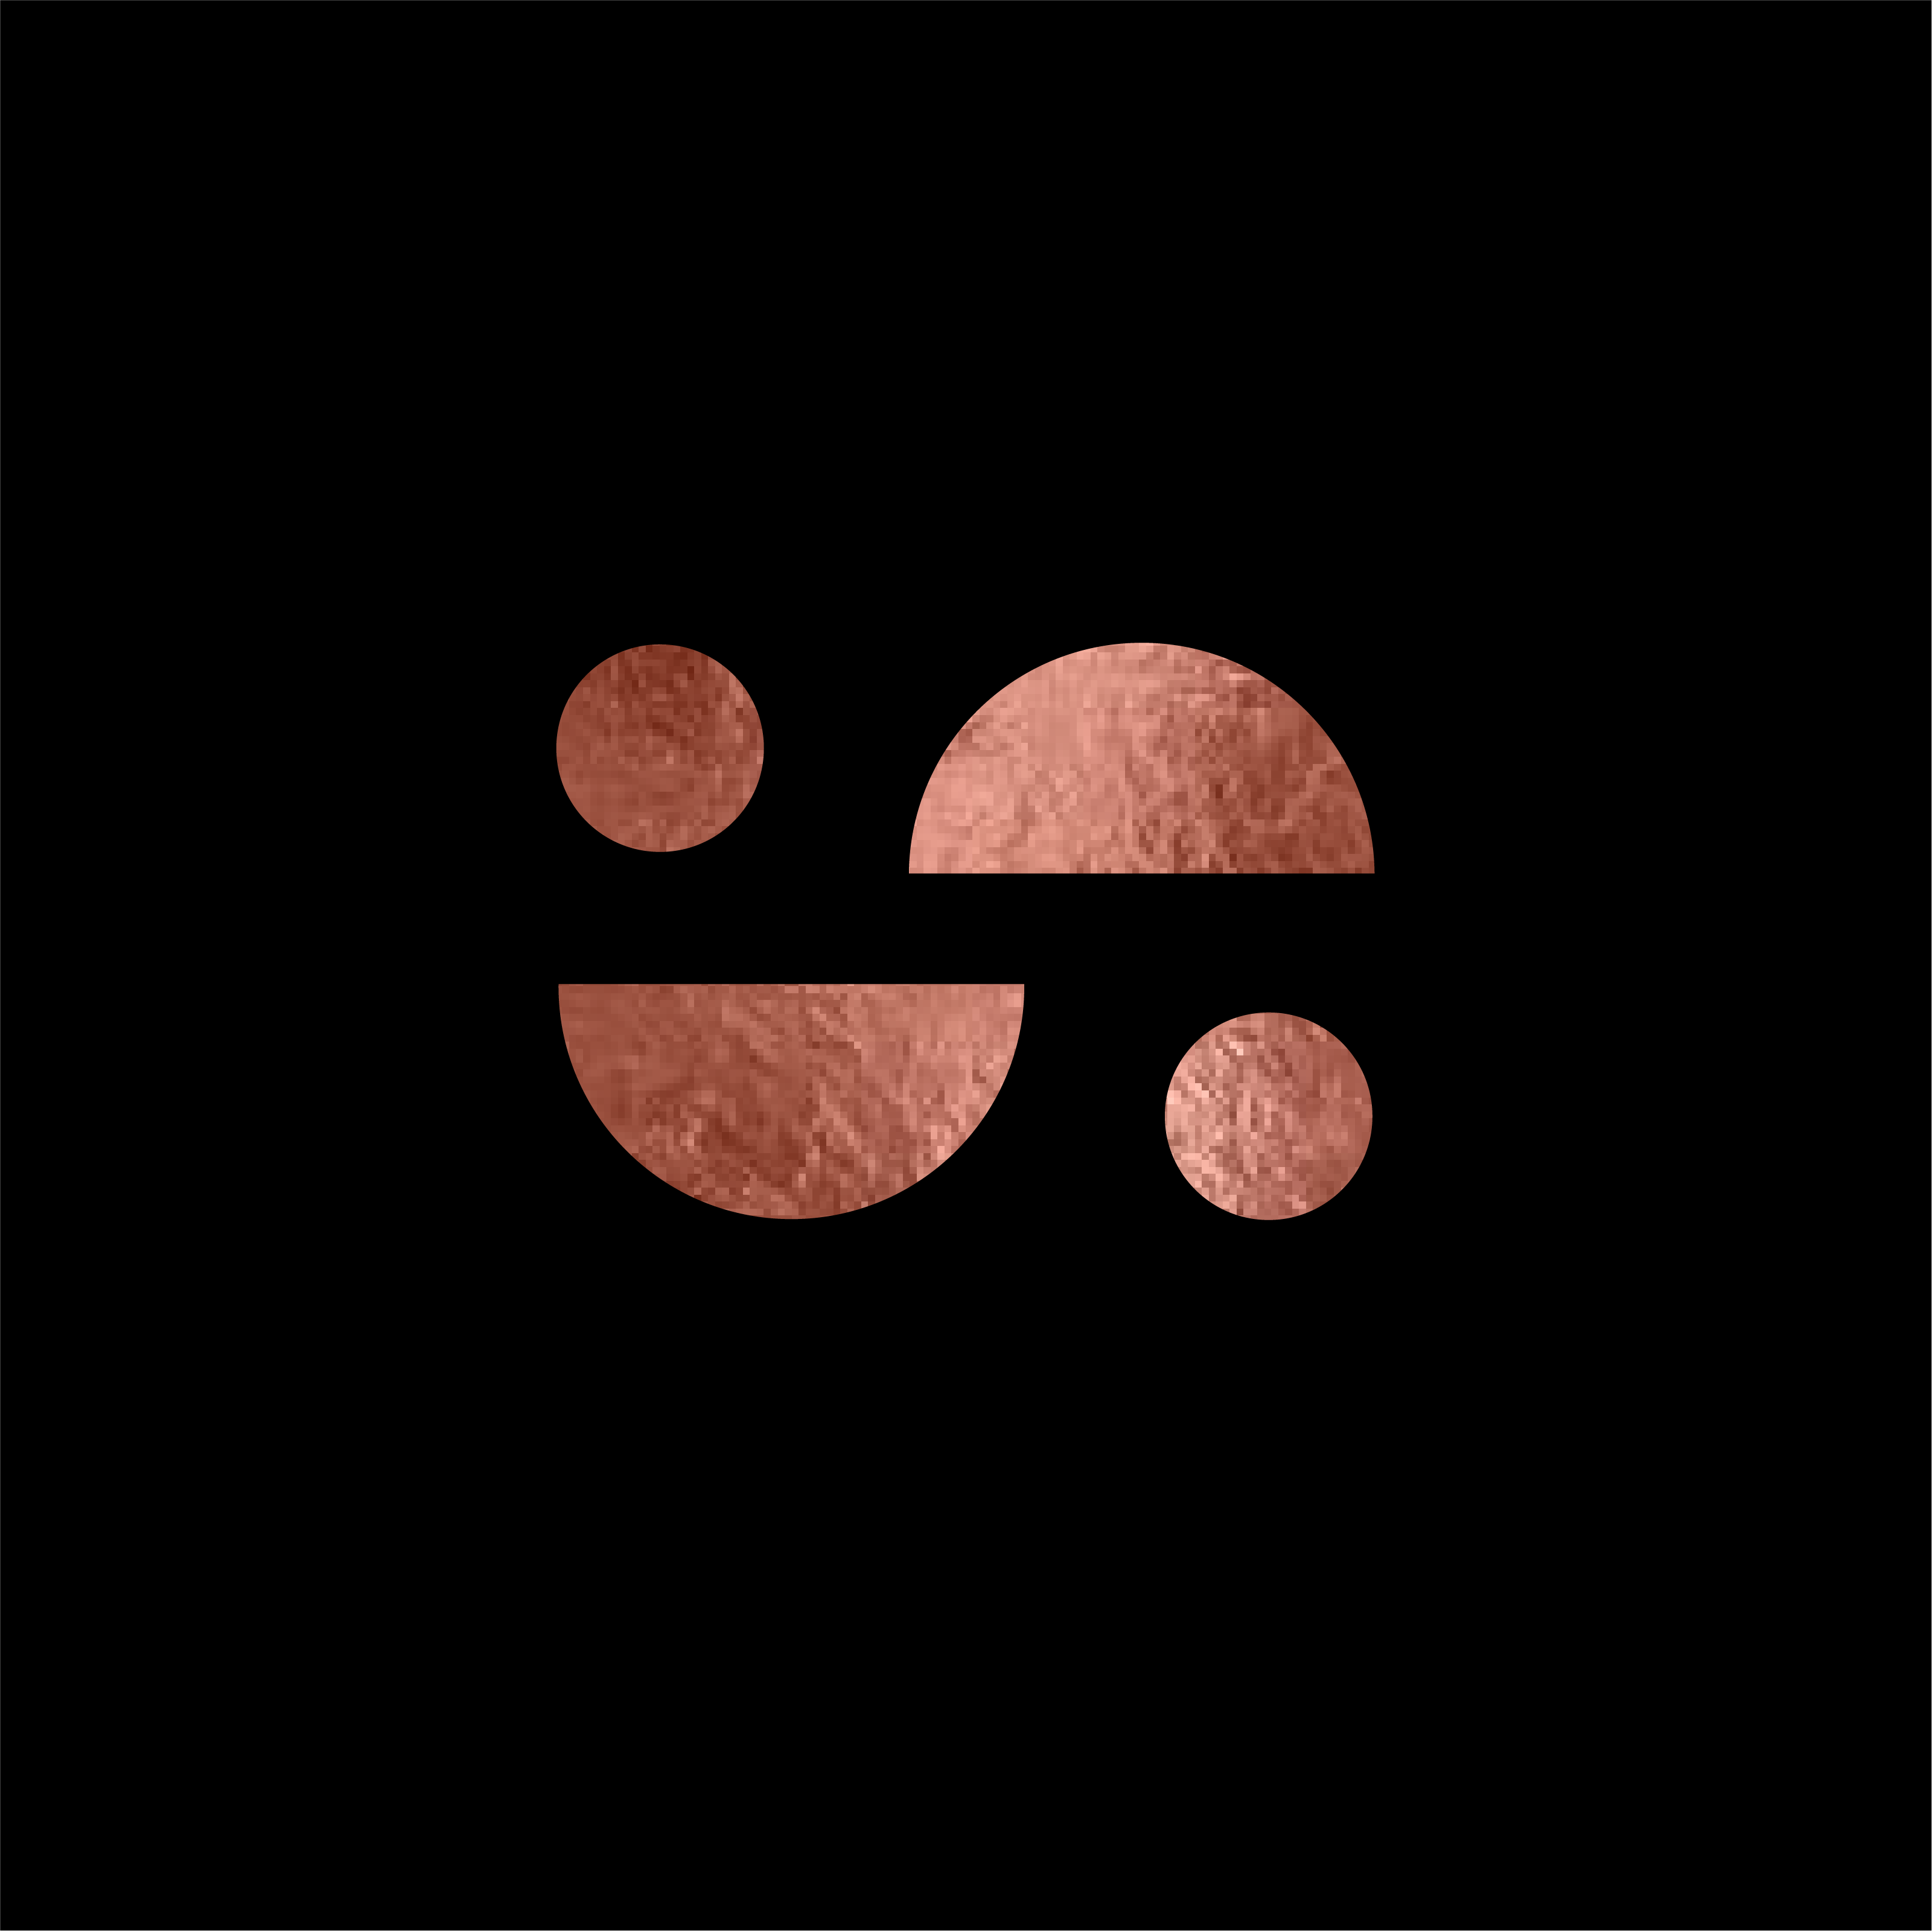 Studio London Co Logo - S Clock wise rotated Logo Rose Gold Foil with black background